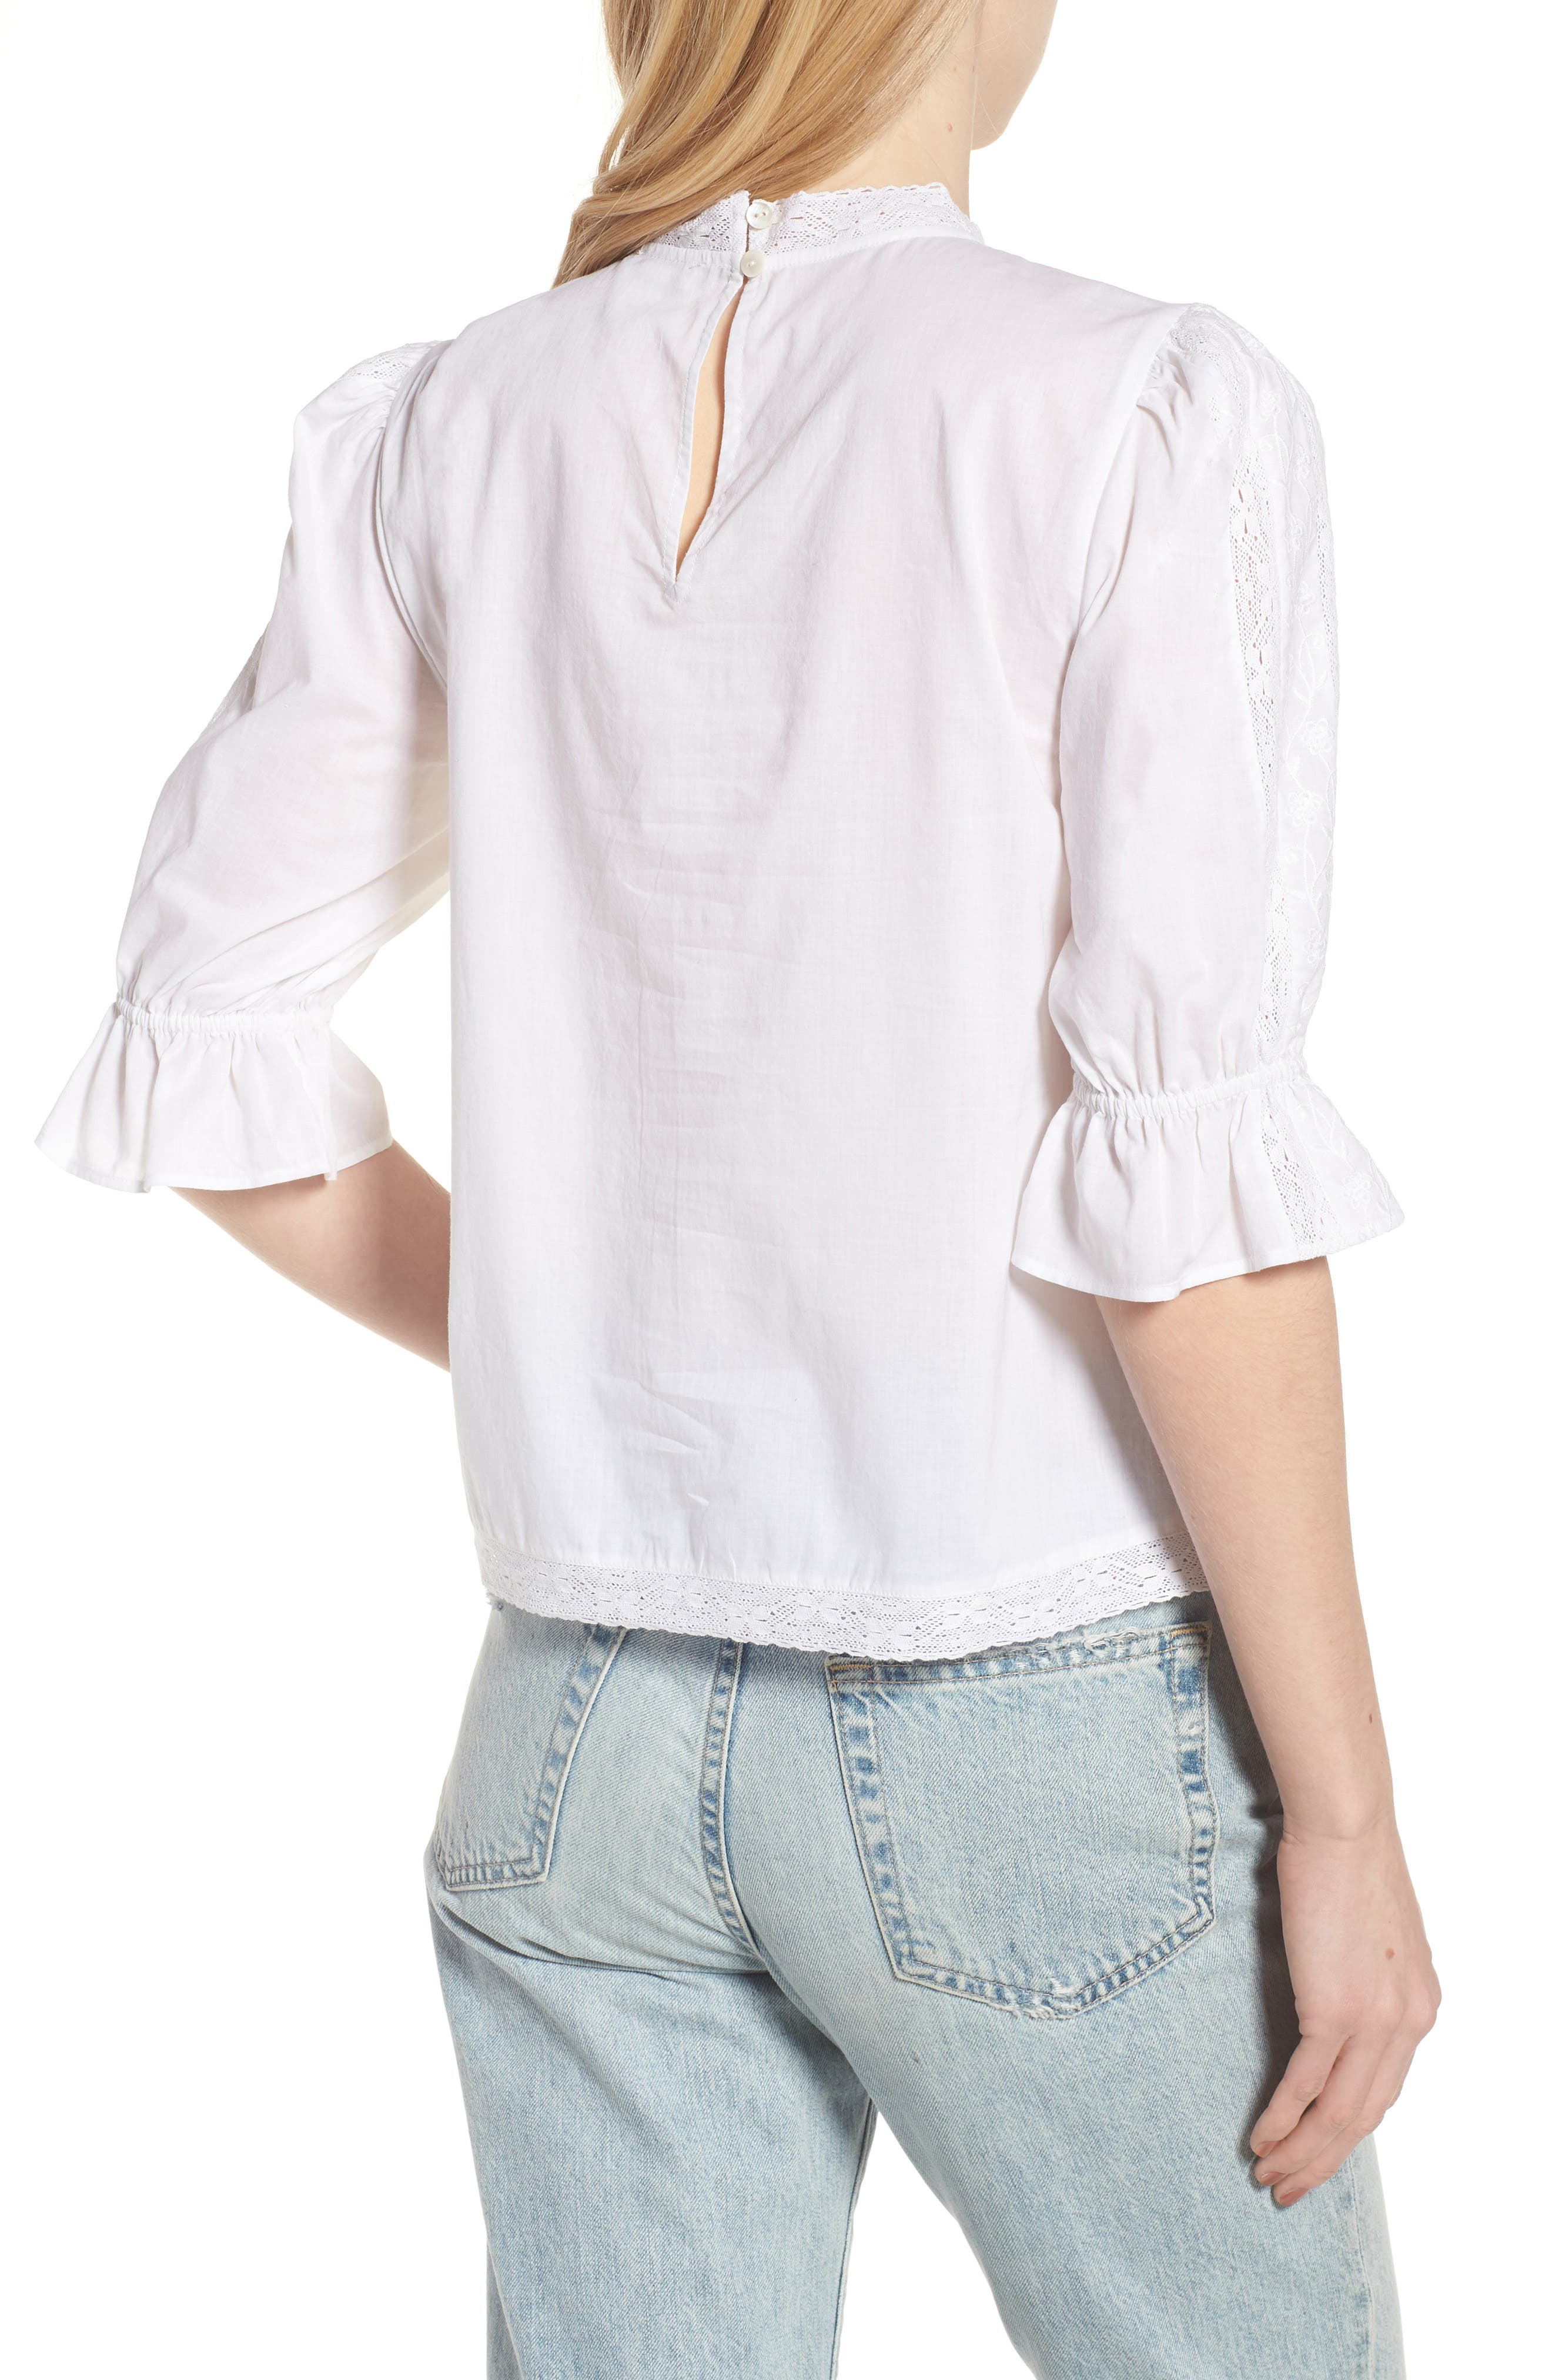 Embroidered Lace Top,                             Alternate thumbnail 2, color,                             White